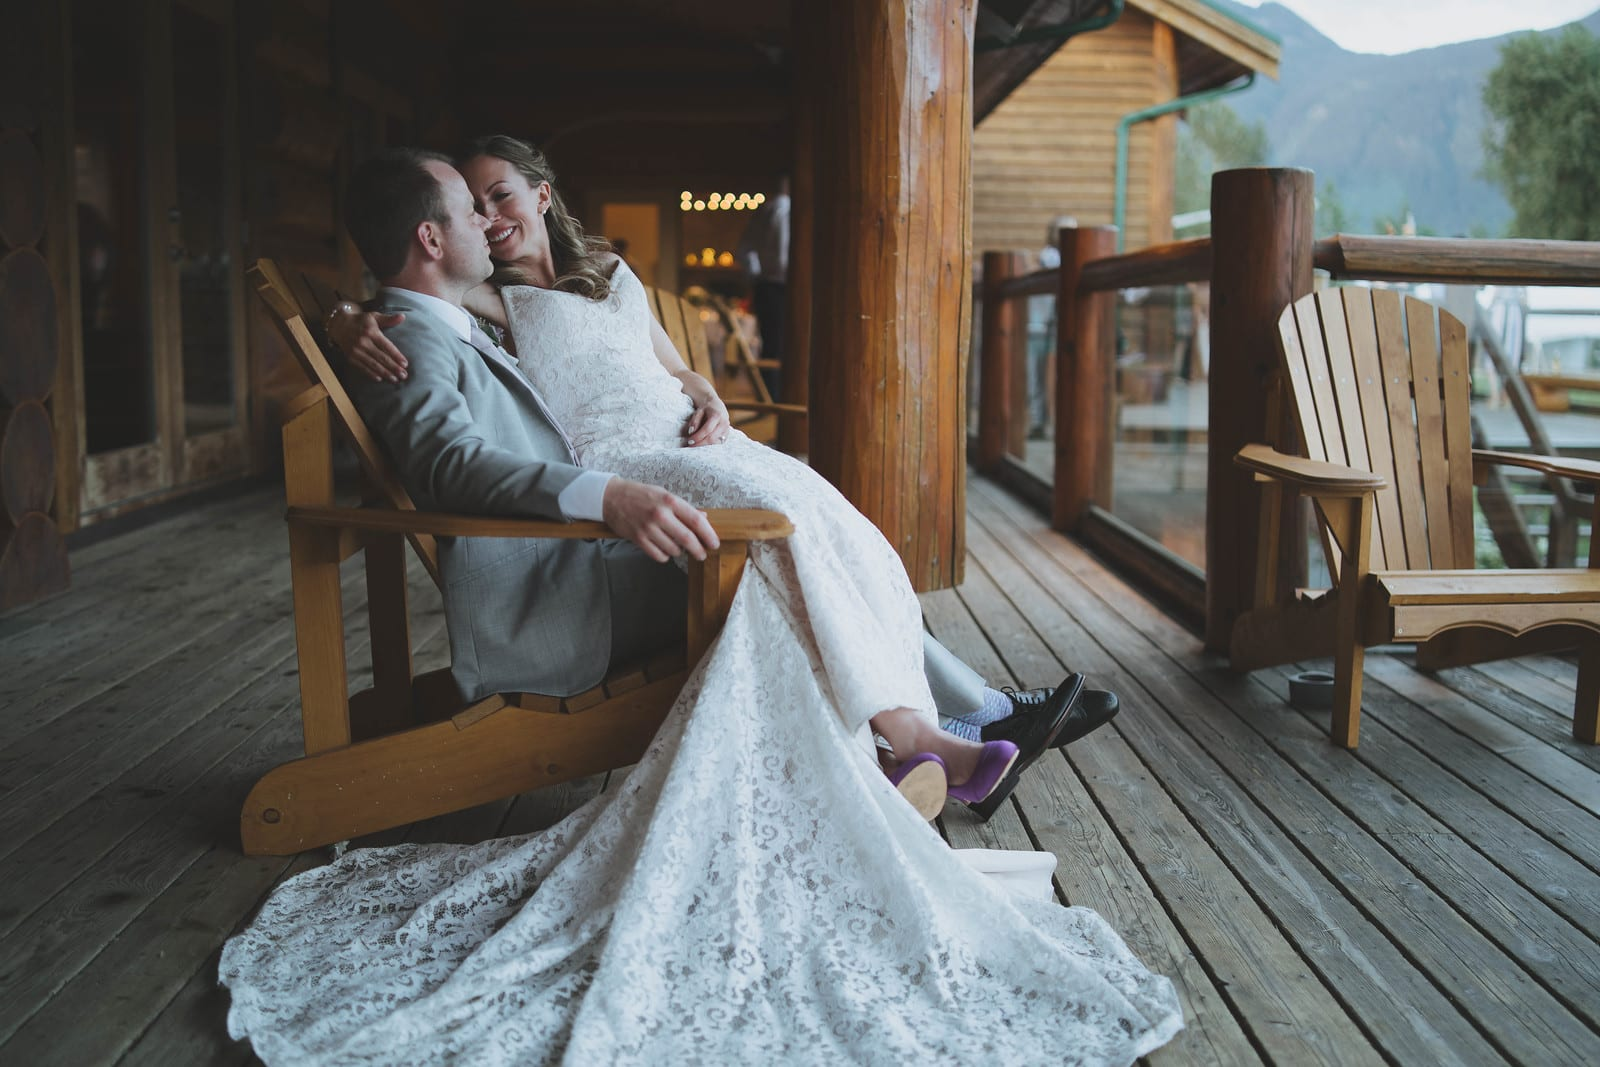 Couple sitting in adirondack chair sharing a moment